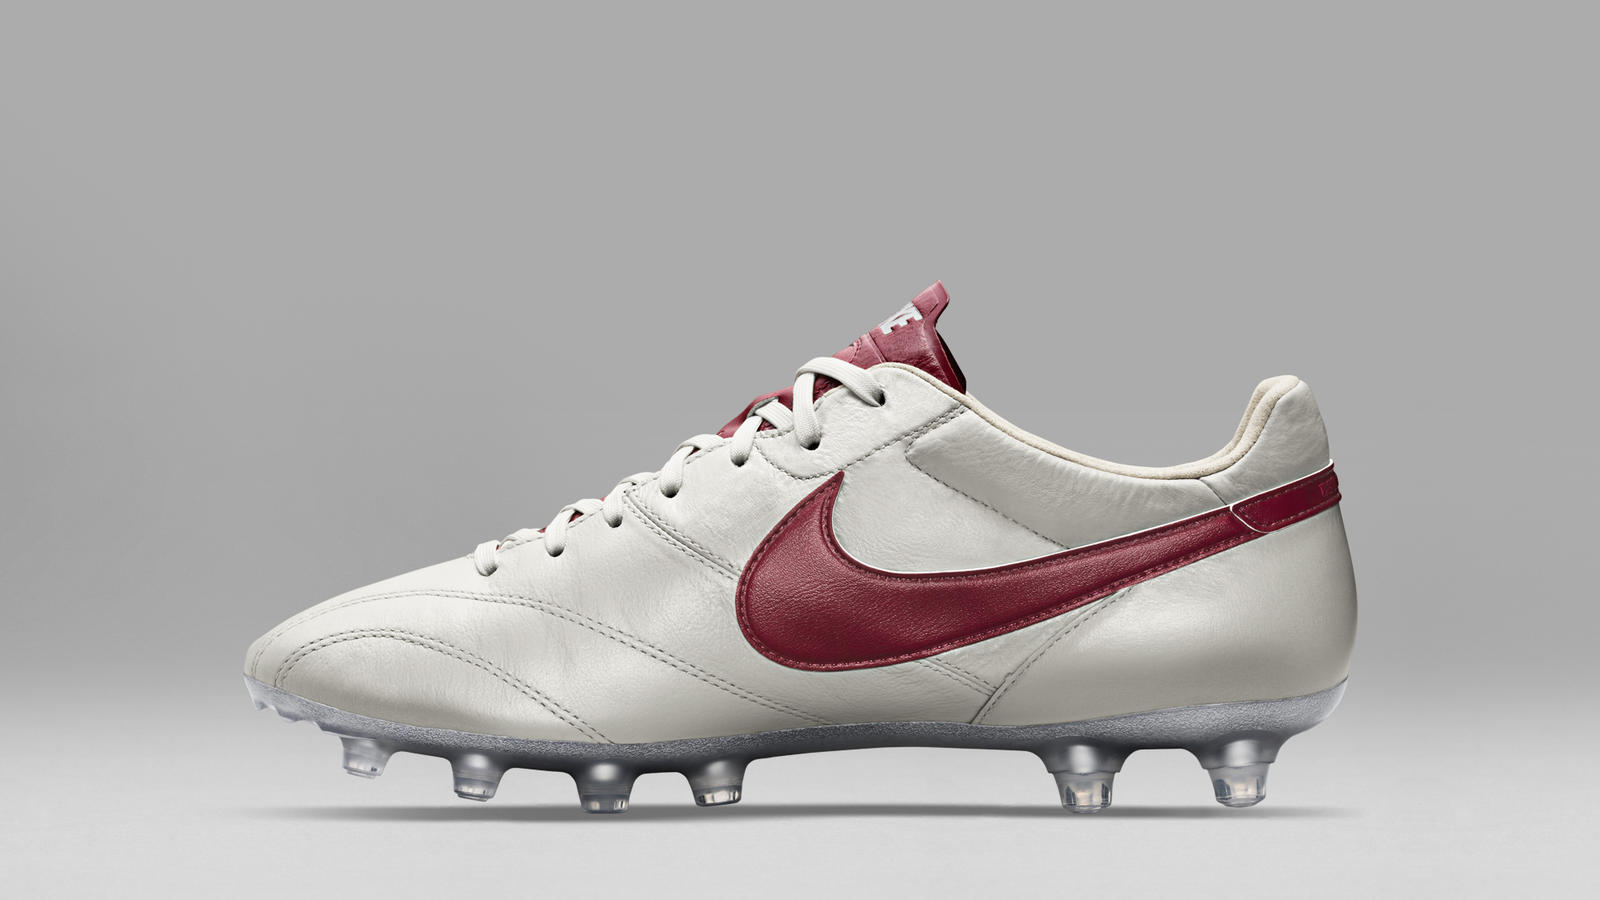 a86dc38daf8 Metallic Summit White and Team Red Metallic Silver.  HO15 FB TIEMPO LEGEND PREMIER SE MTLC SMMT WHITE RED C PREM